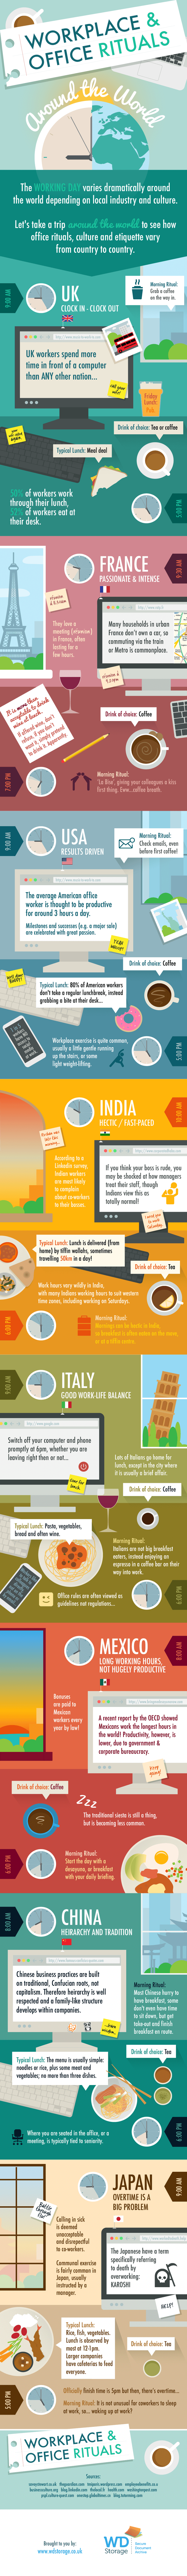 Workplace and Office Rituals from Around the World